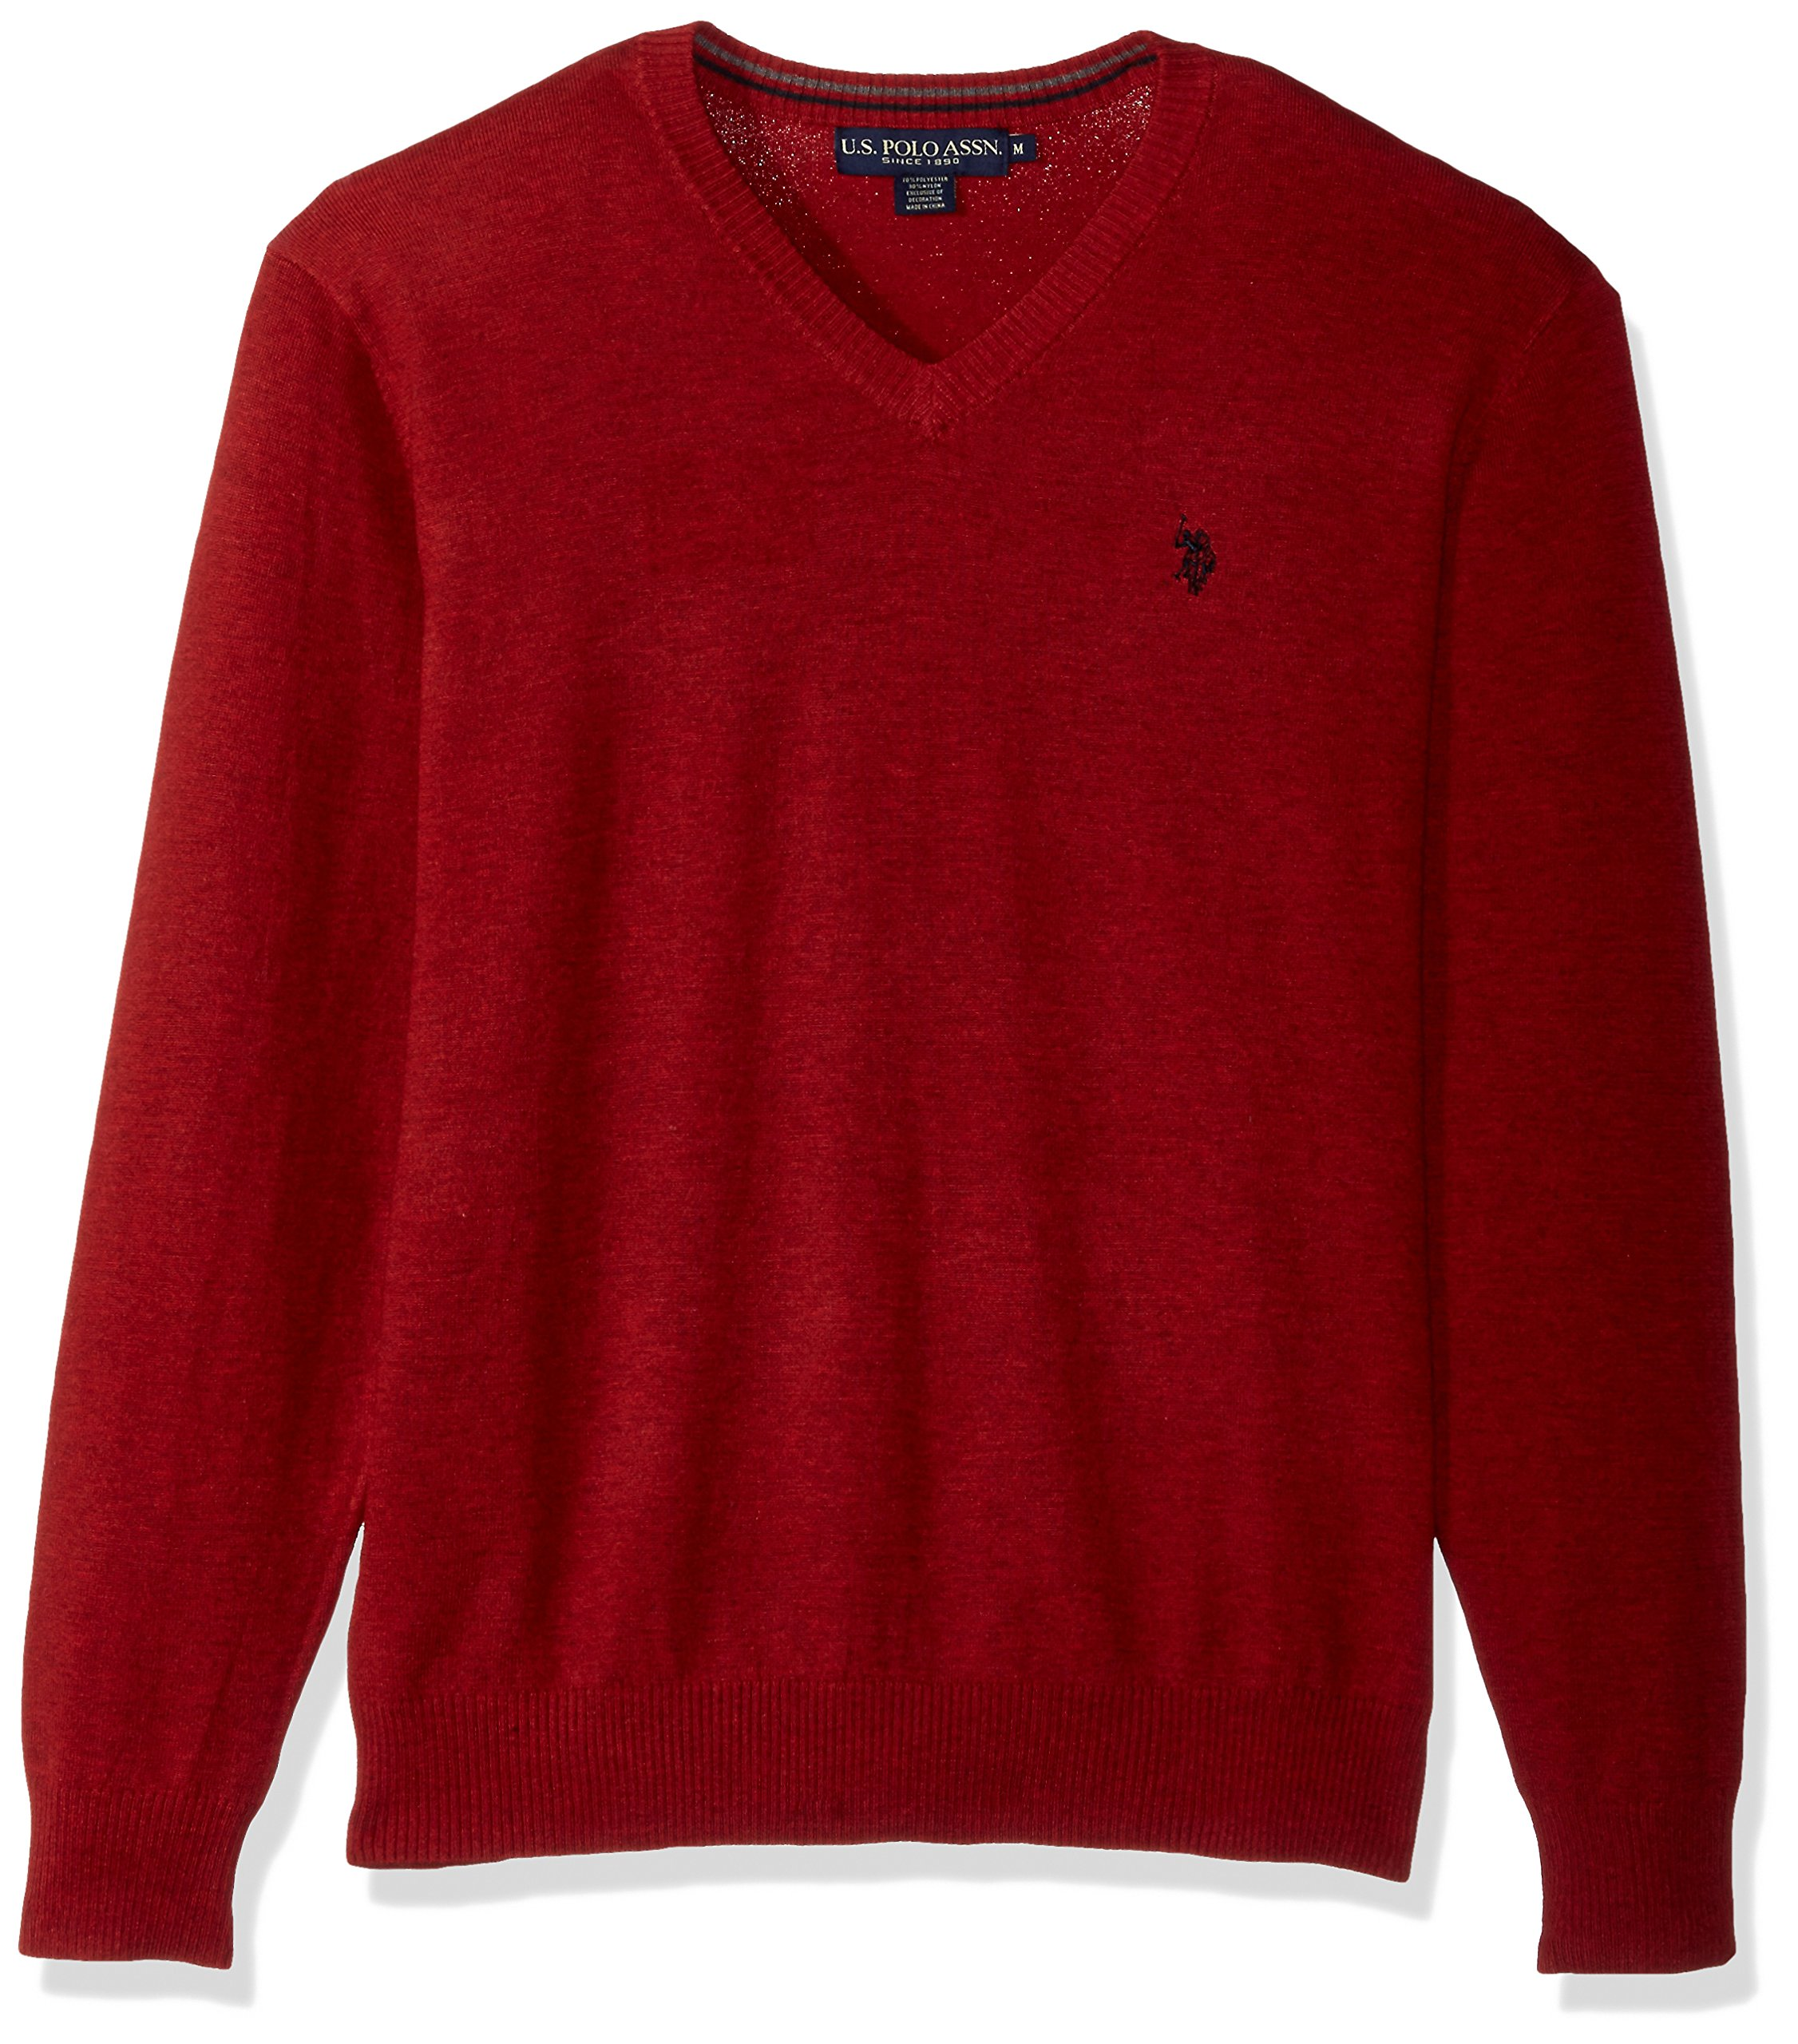 U.S. Polo Assn. Men's Stretch Fabric Solid V-Neck Sweater, Strawberry Heather, X-Large